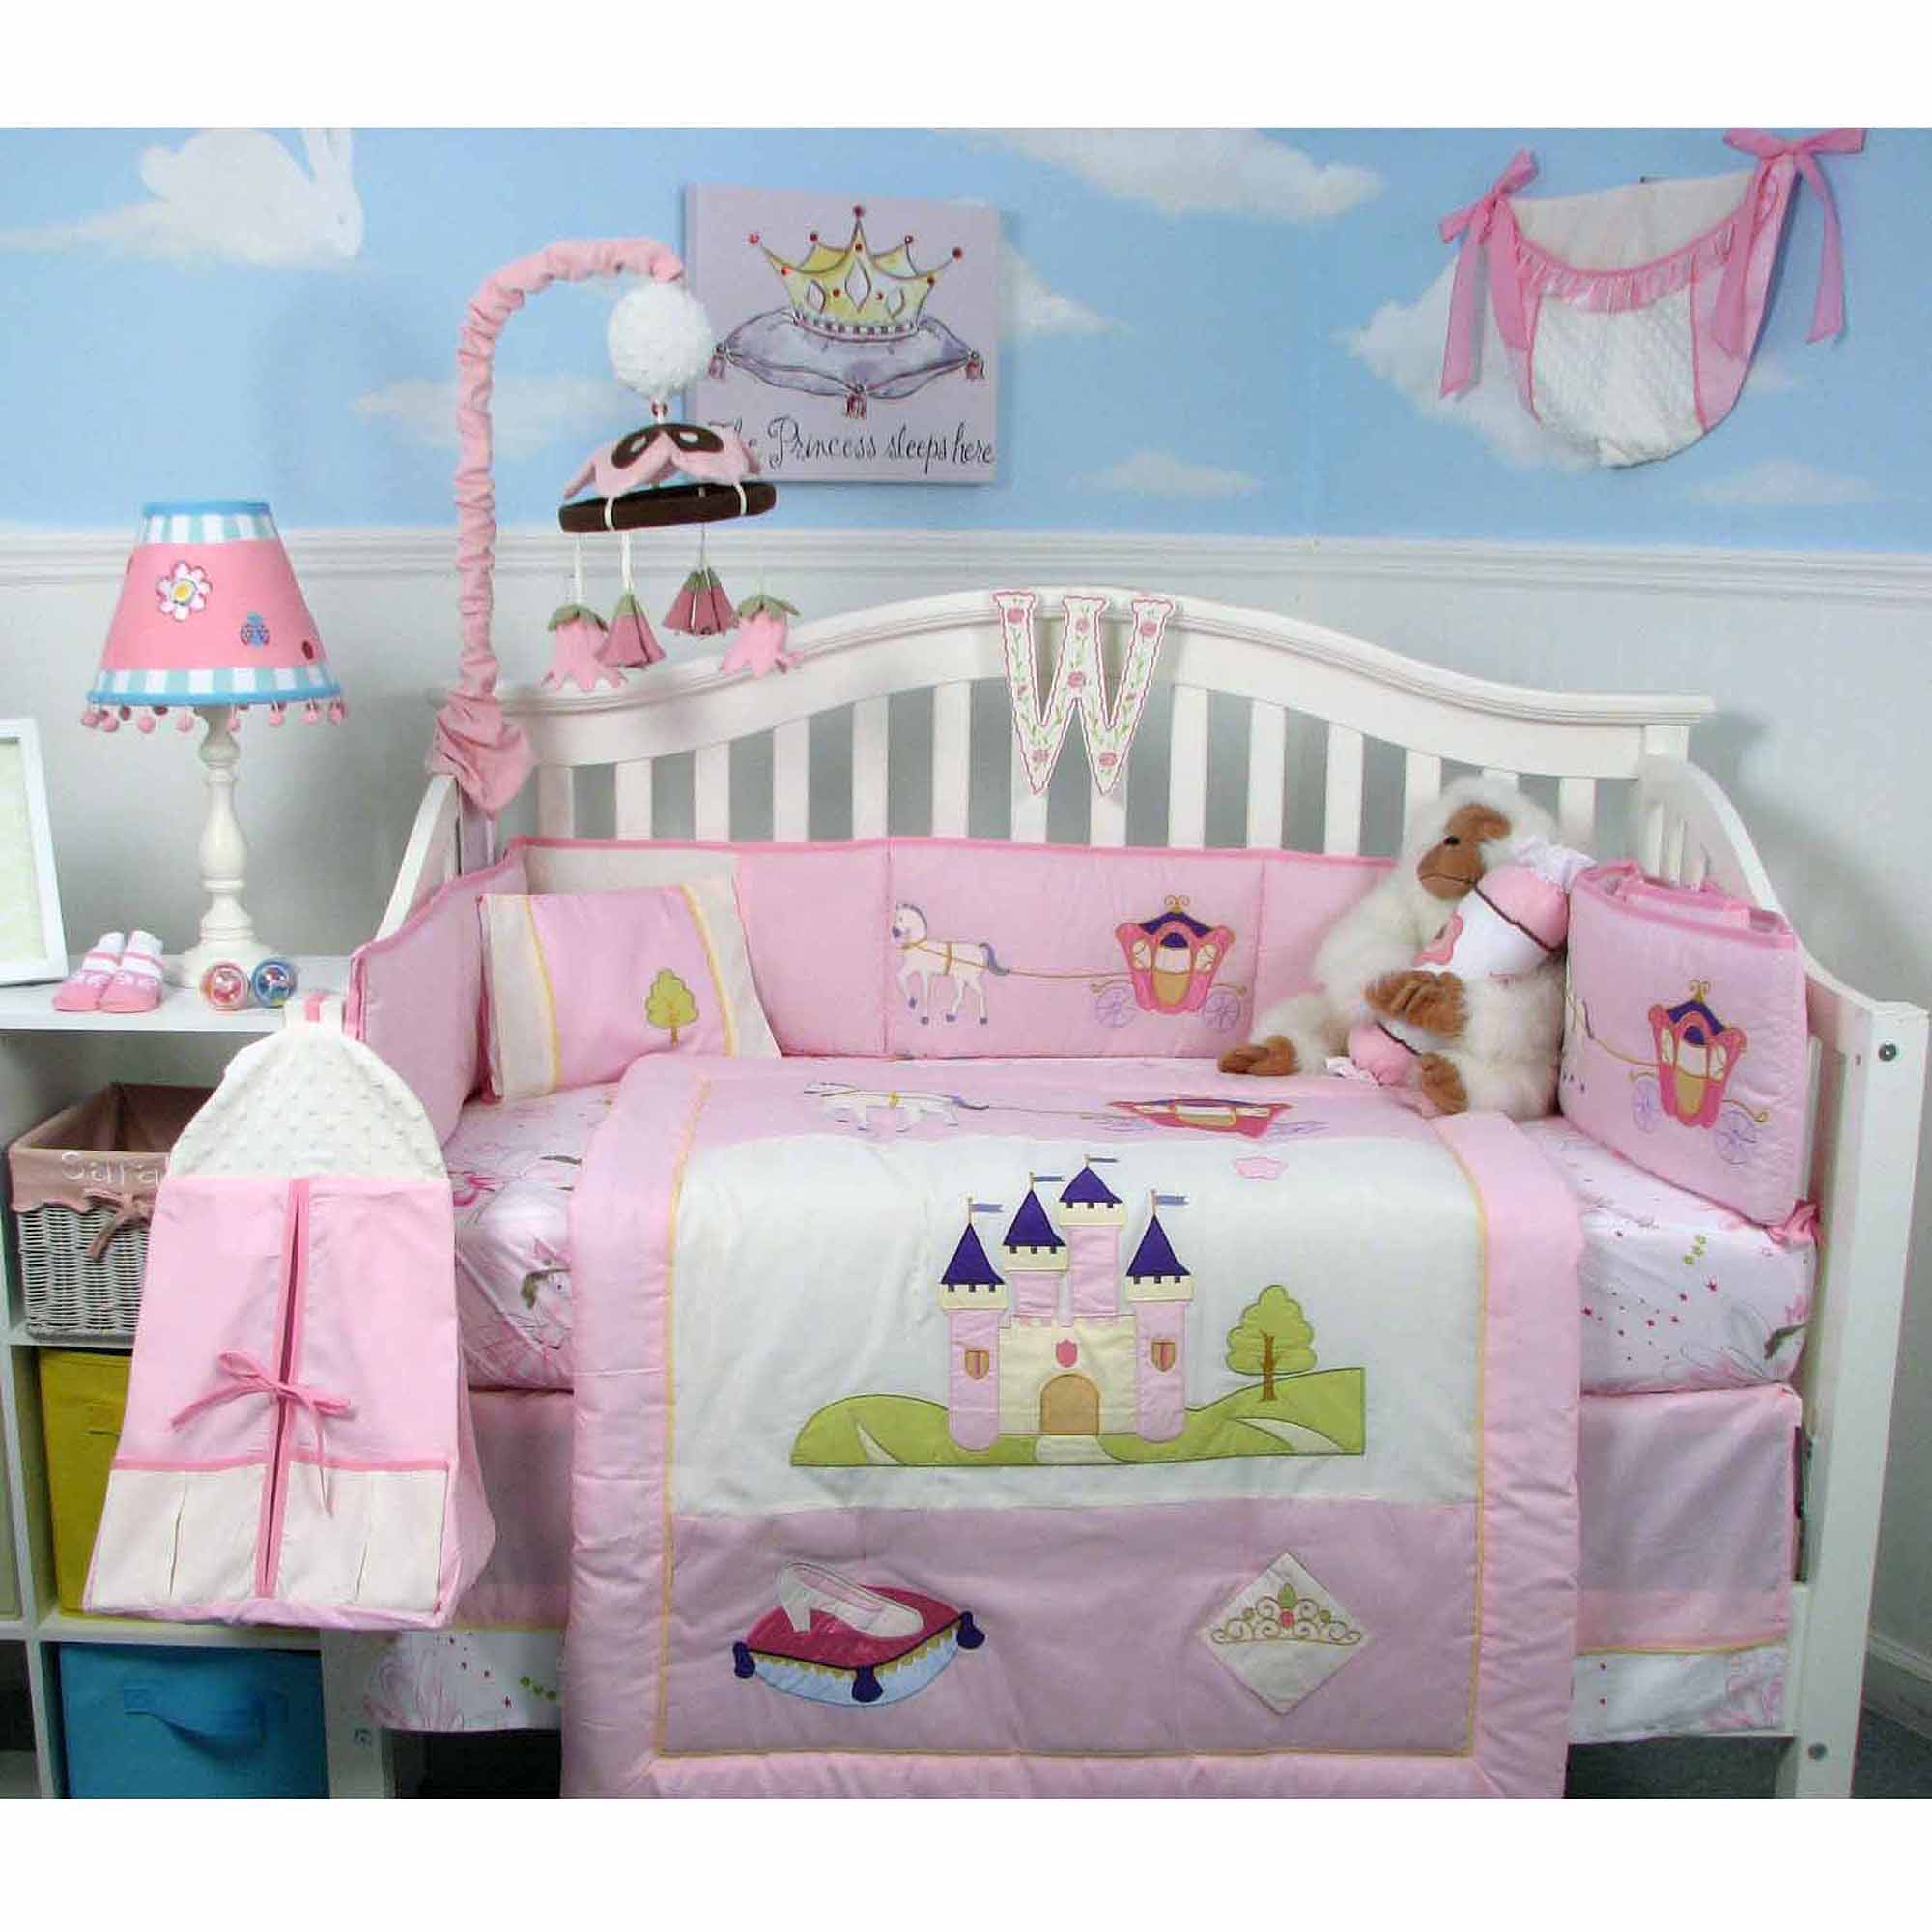 bed princess white hi res magical delta toddler crib products cribs children disney dreams ambiance in left